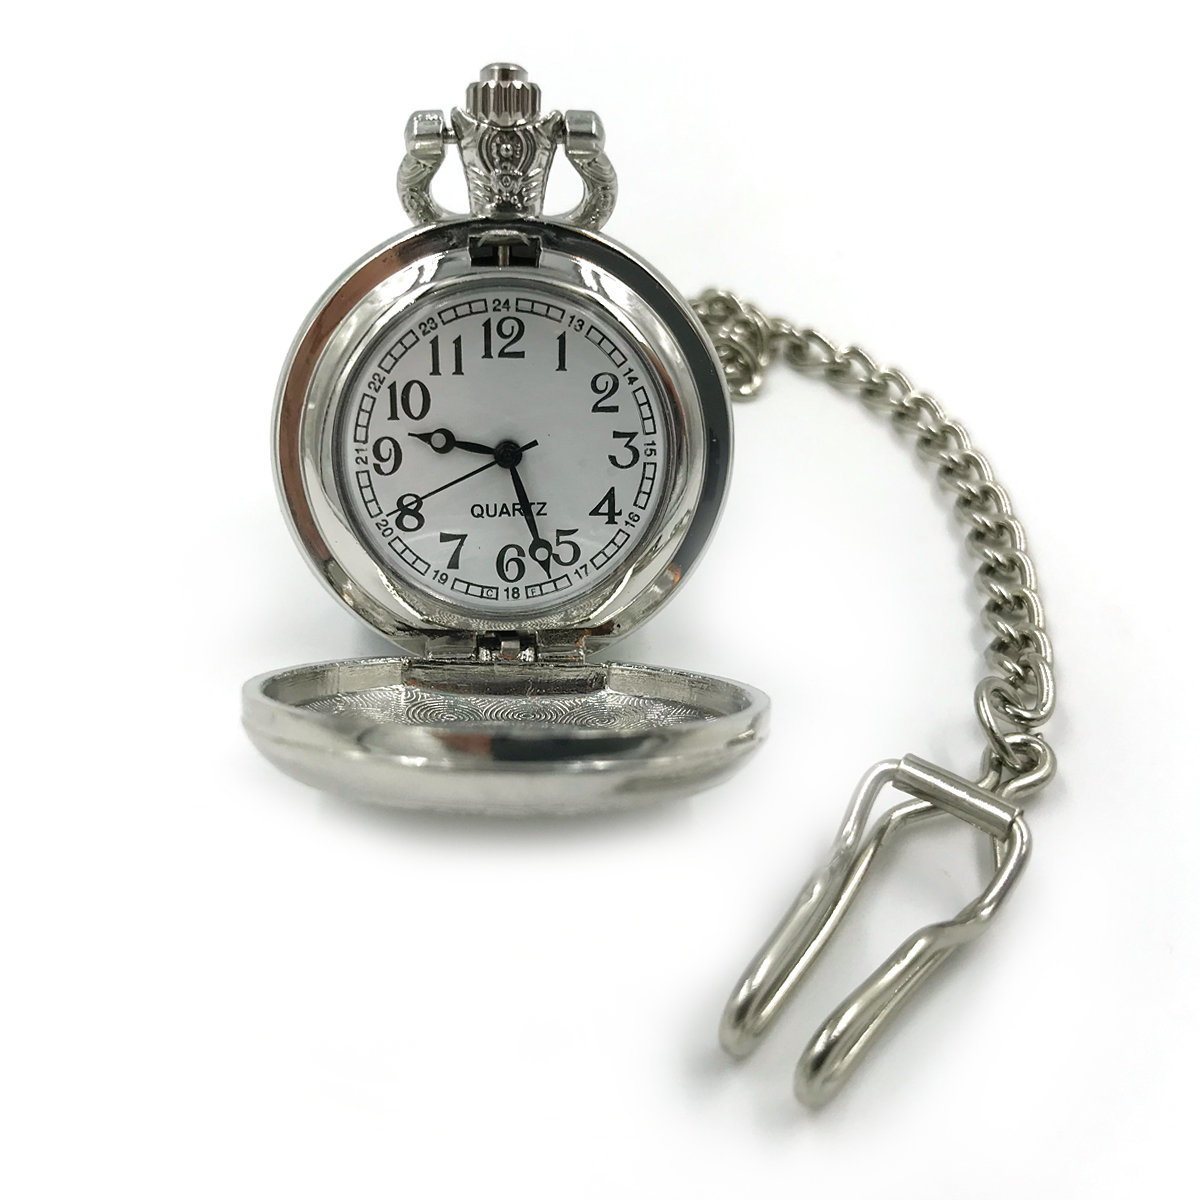 Vintage Compass Pocketwatch, pocket watch, pocketwatches, gift for him, mens poc